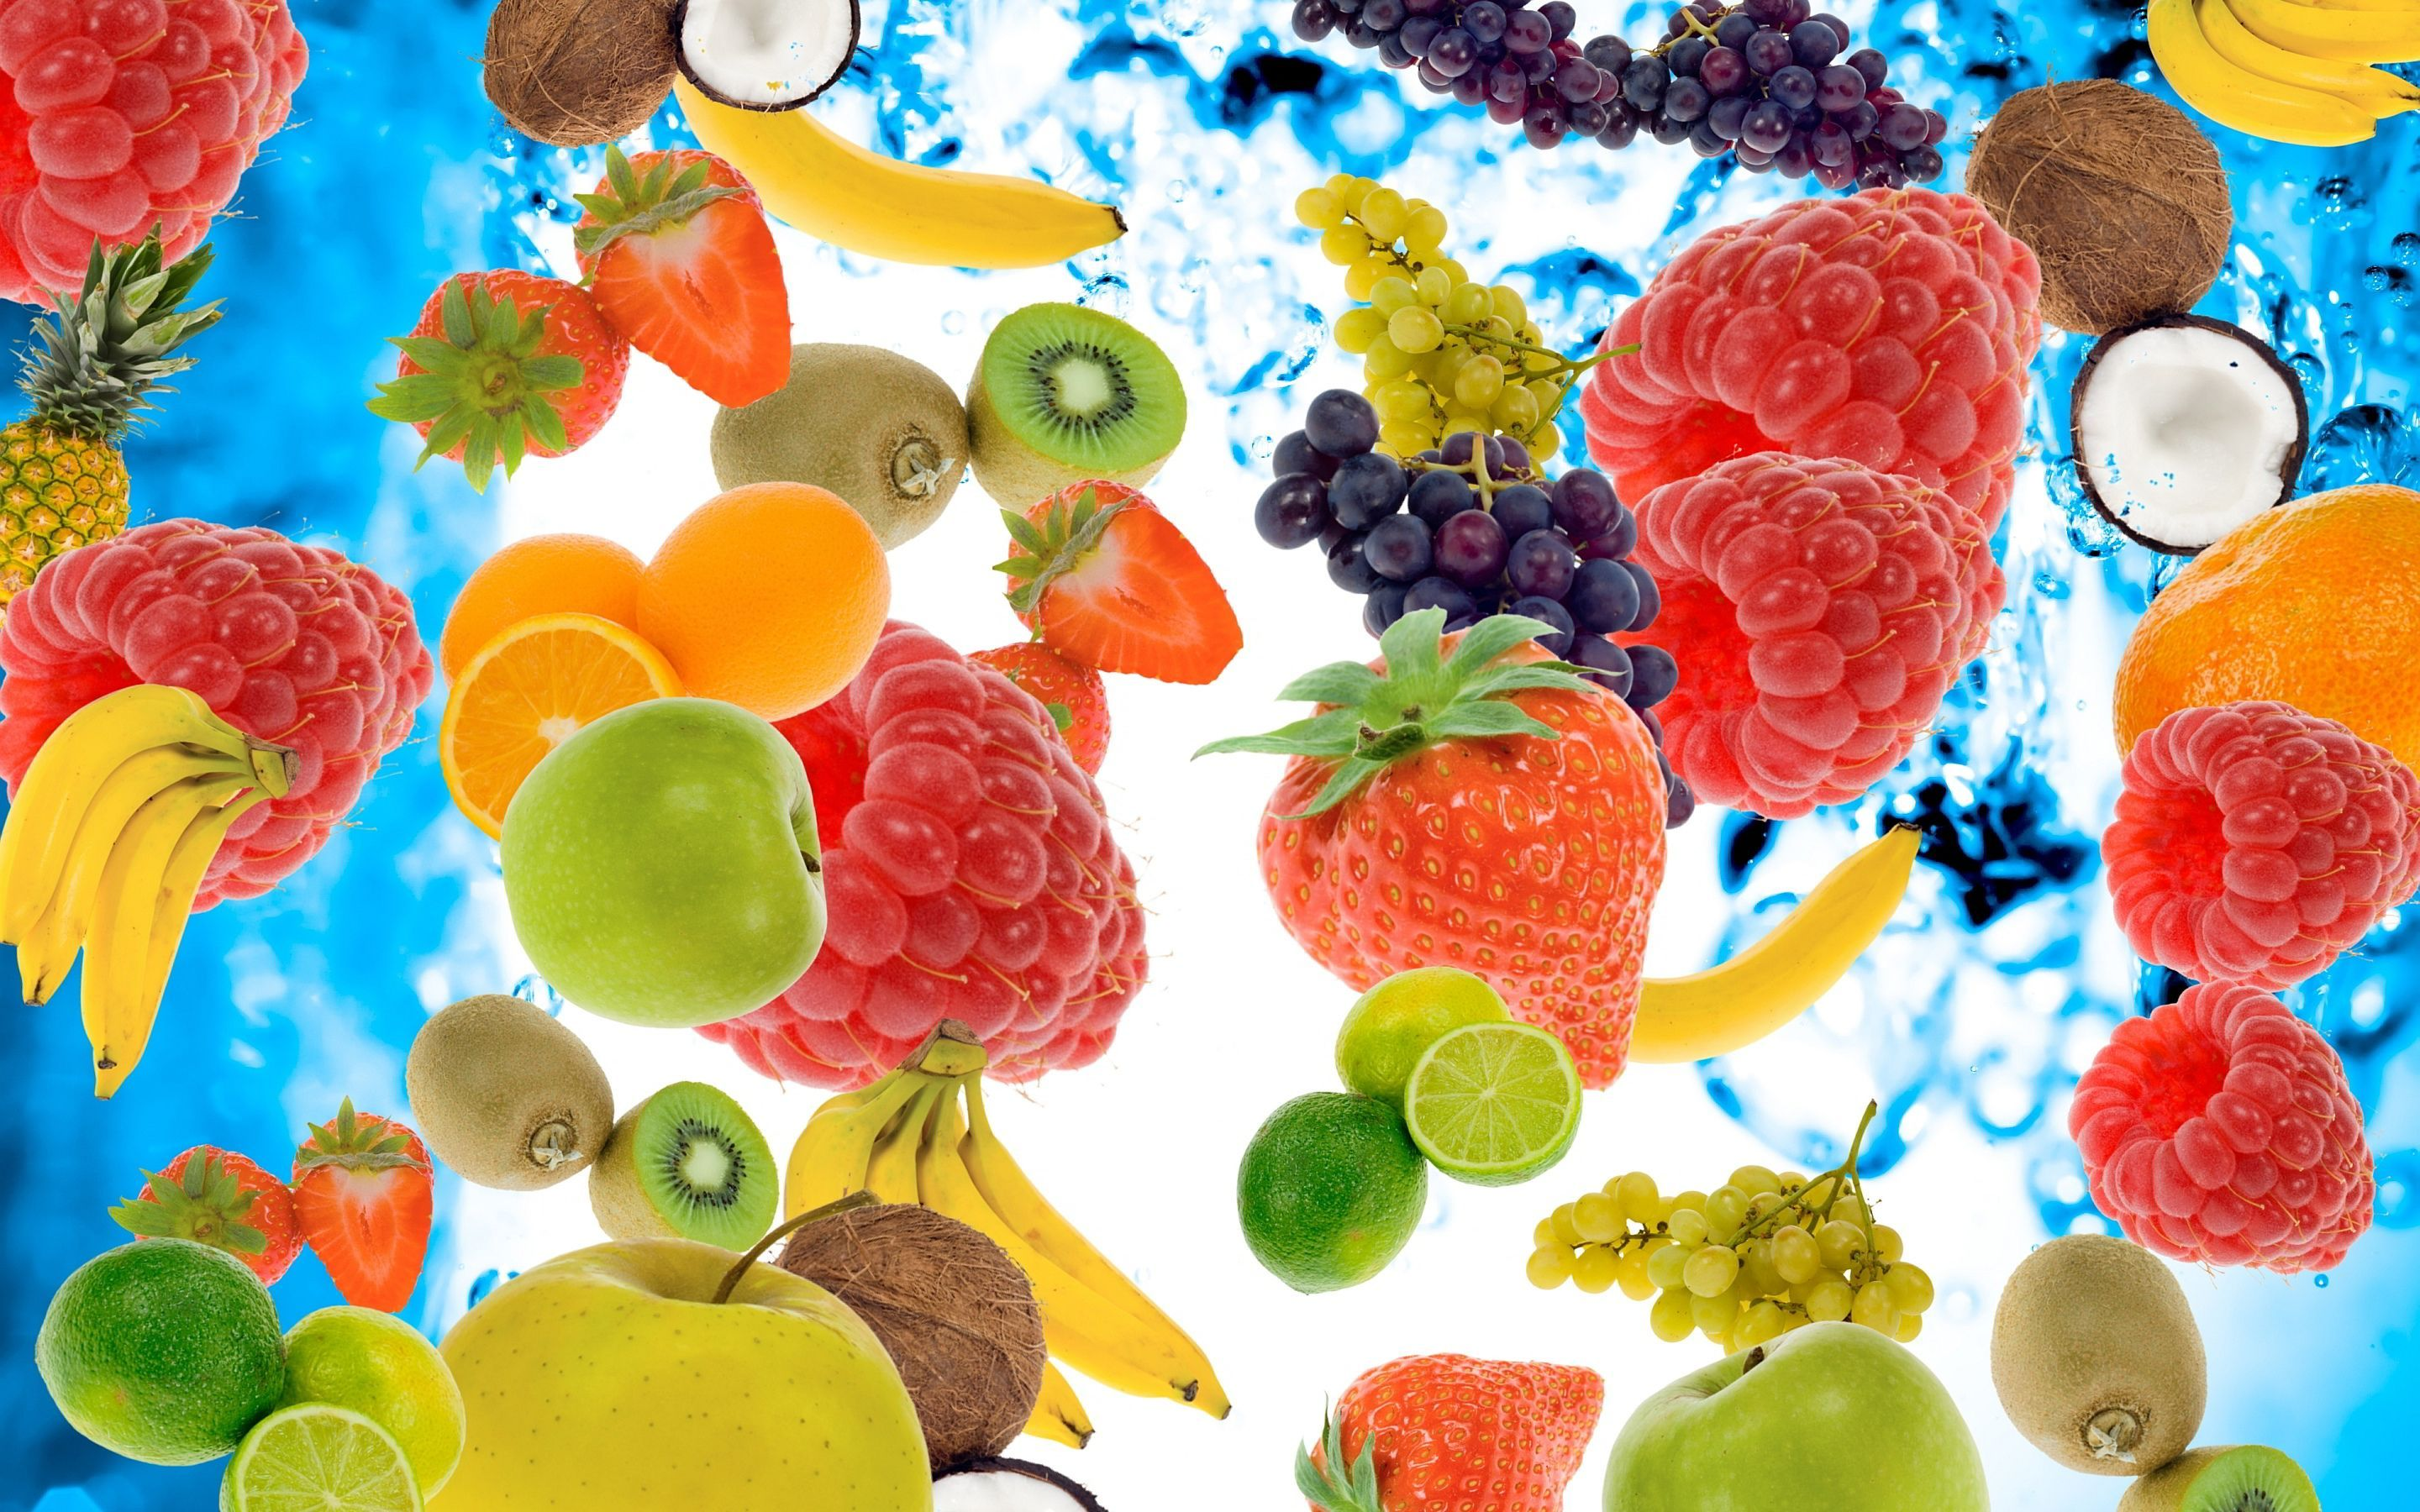 2880x1800 Fruit wallpaper | Photography | Fruit infused water, Fruits ...